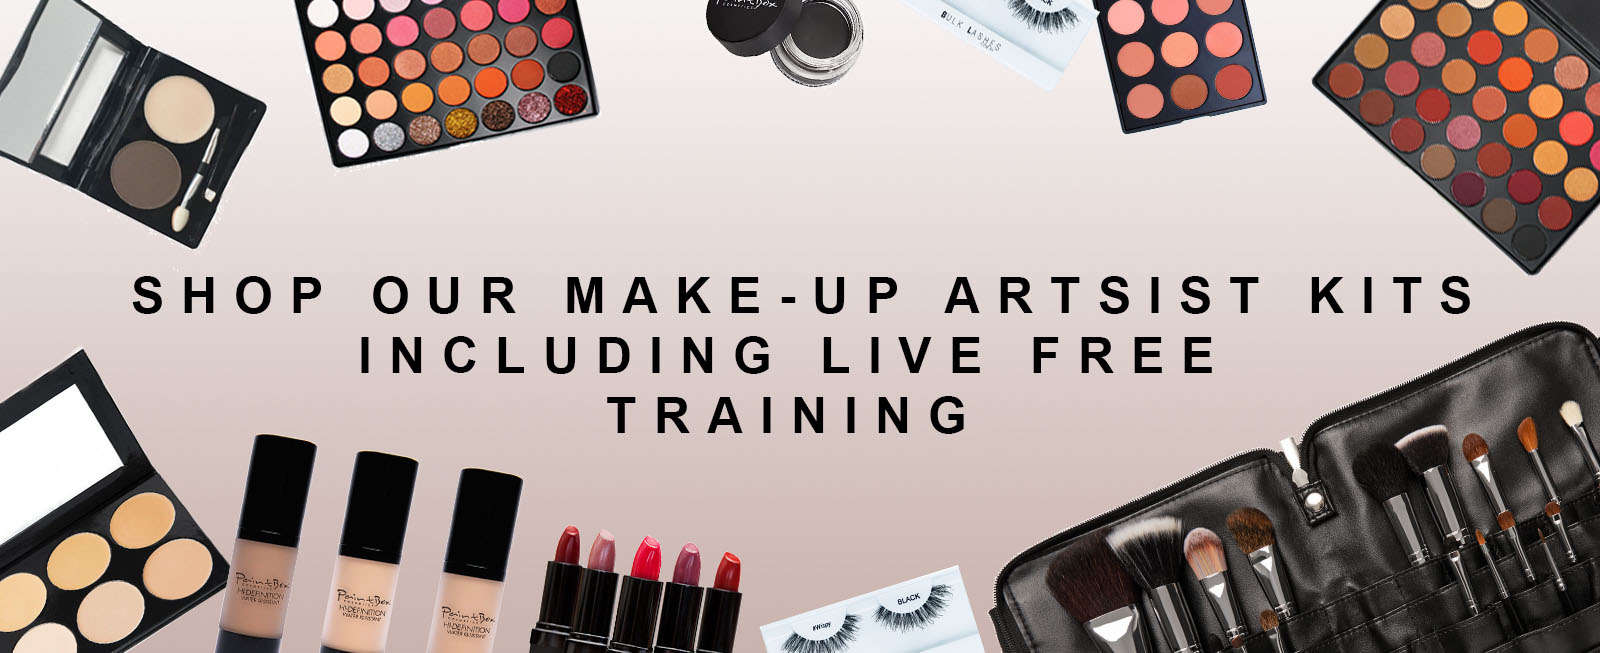 BANNER MAKE UP KITS AND FREE TRAINING